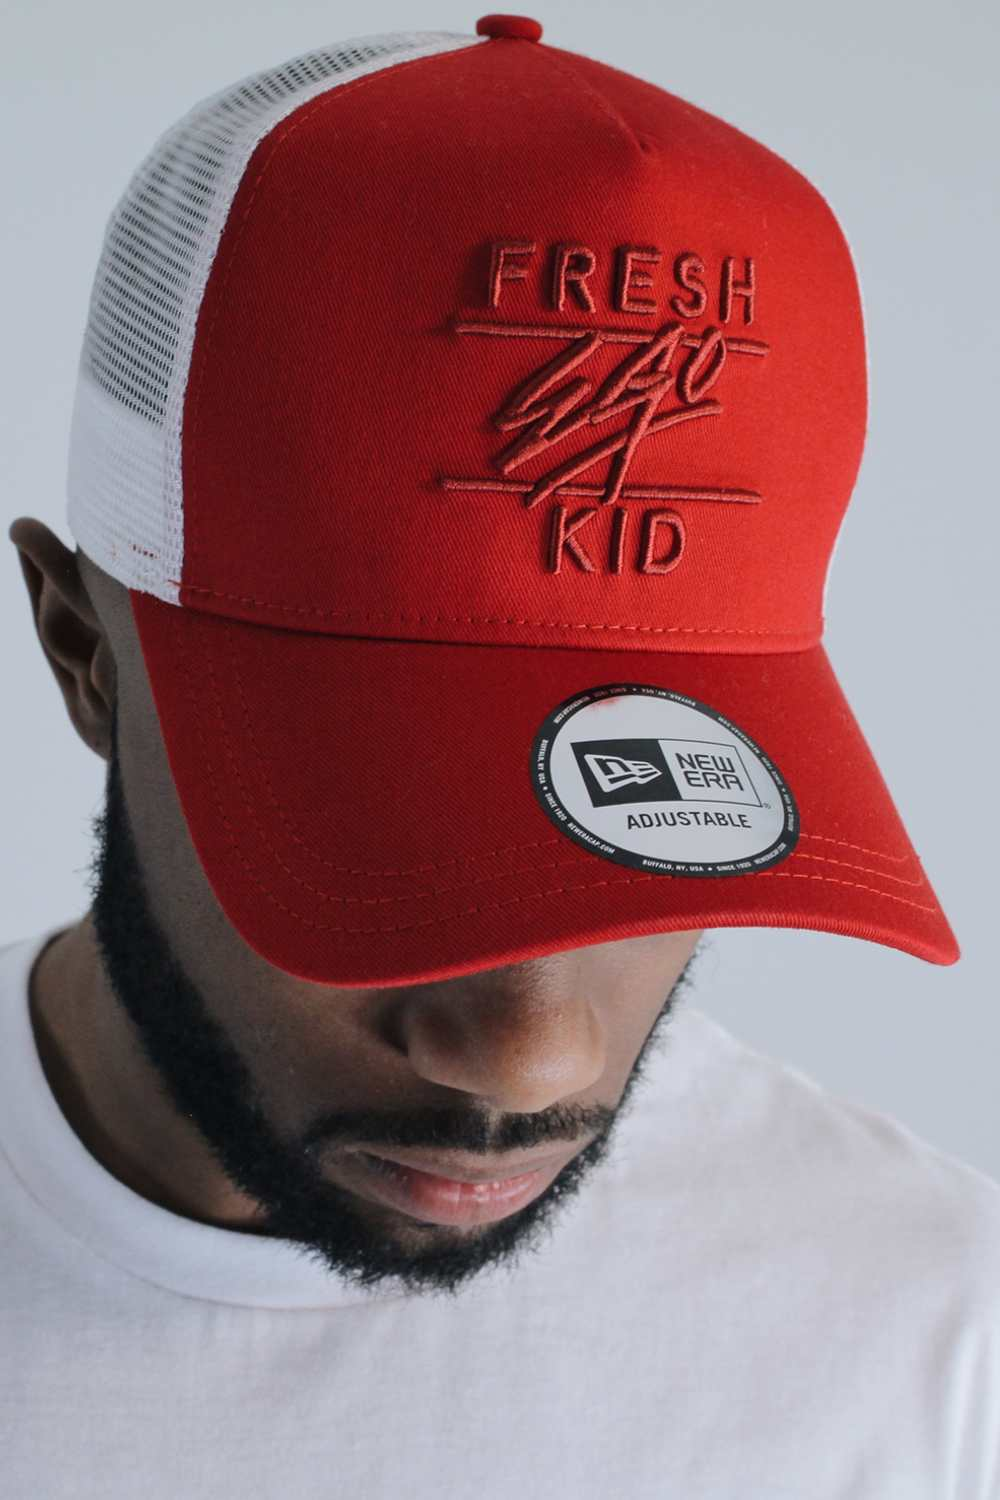 Fresh Ego Kid New Era Mesh Trucker Cap - Red/White